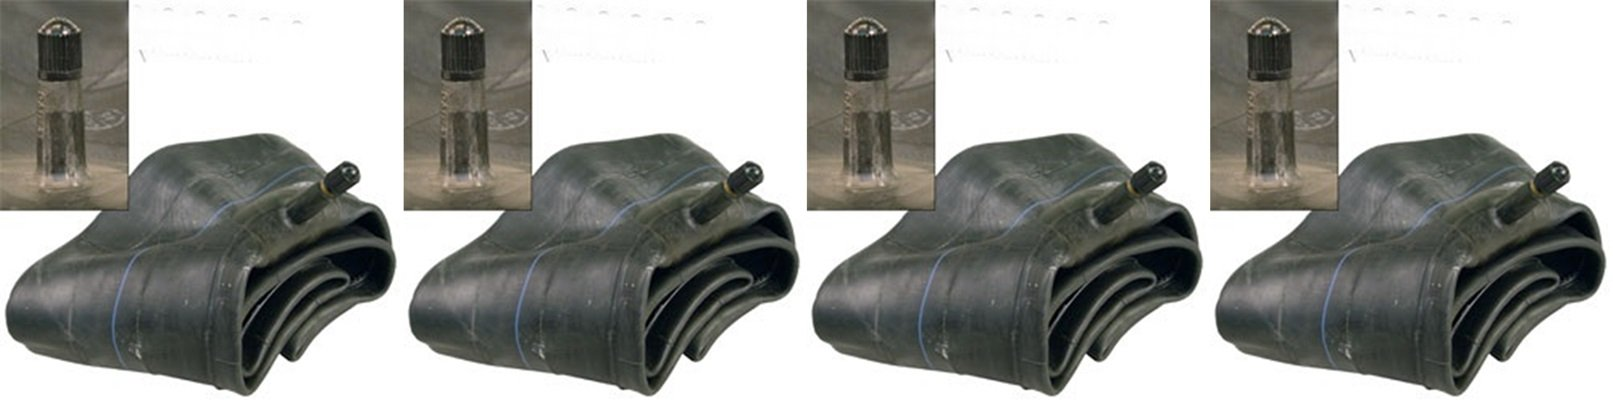 "SET OF FOUR (4) Air Loc Brand Tire Inner Tubes with TR13 Rubber Valve Stem (2 of 6"") & (2 of 8"") inch Combination Sizes 2 ea. 15x6.00-6 and 2ea. 18/20x8.50/9.50/10-8"